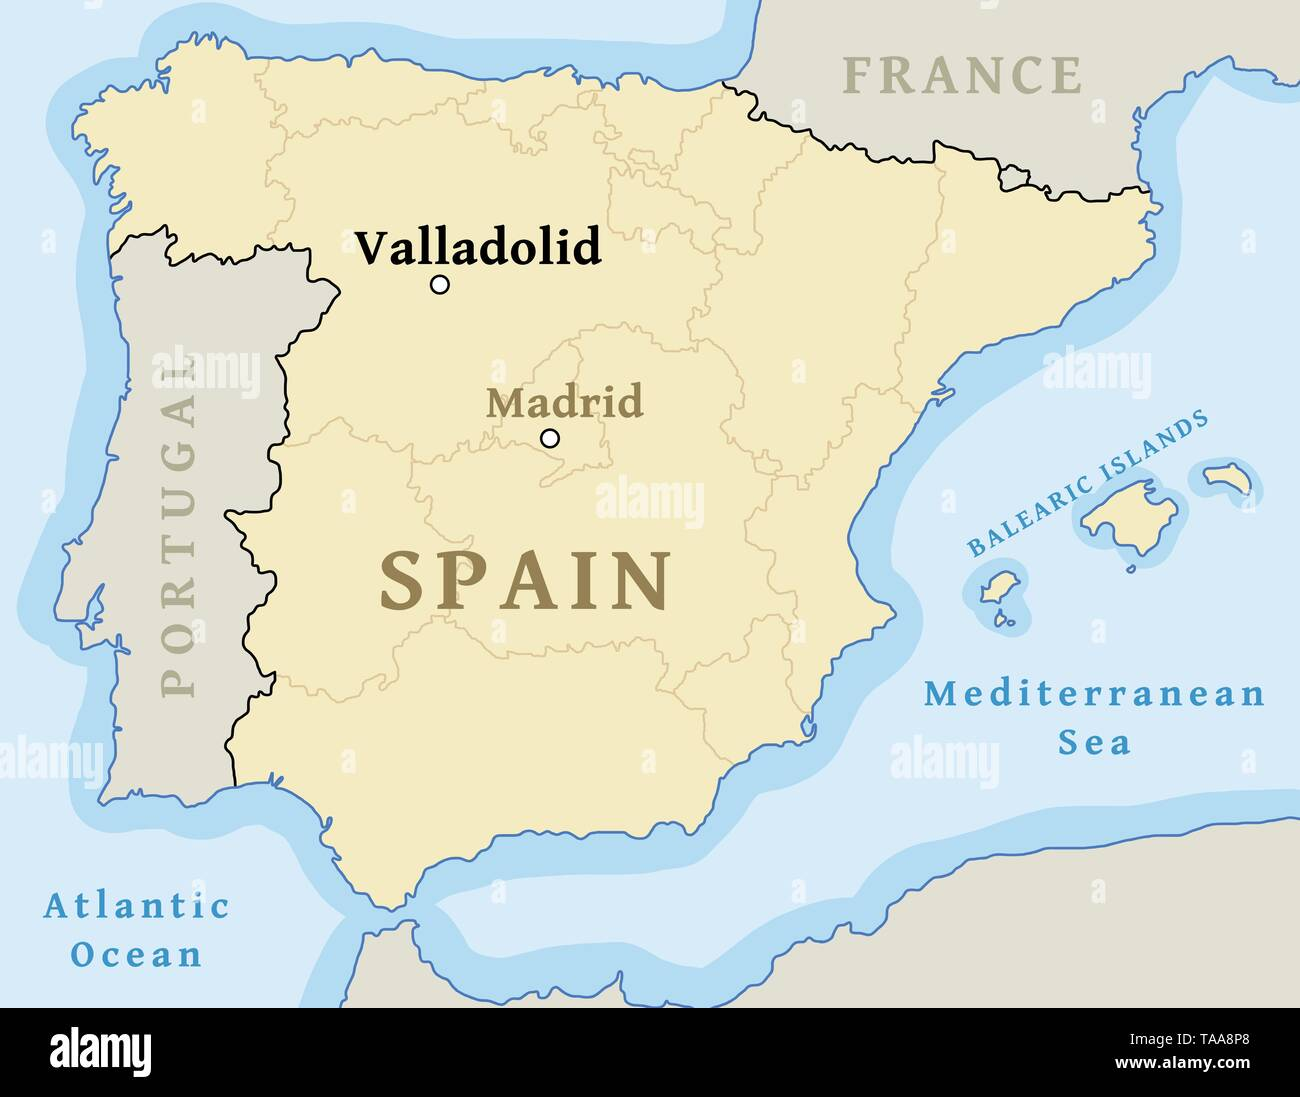 Valladolid Map Location Locate City On Map Of Spain Vector